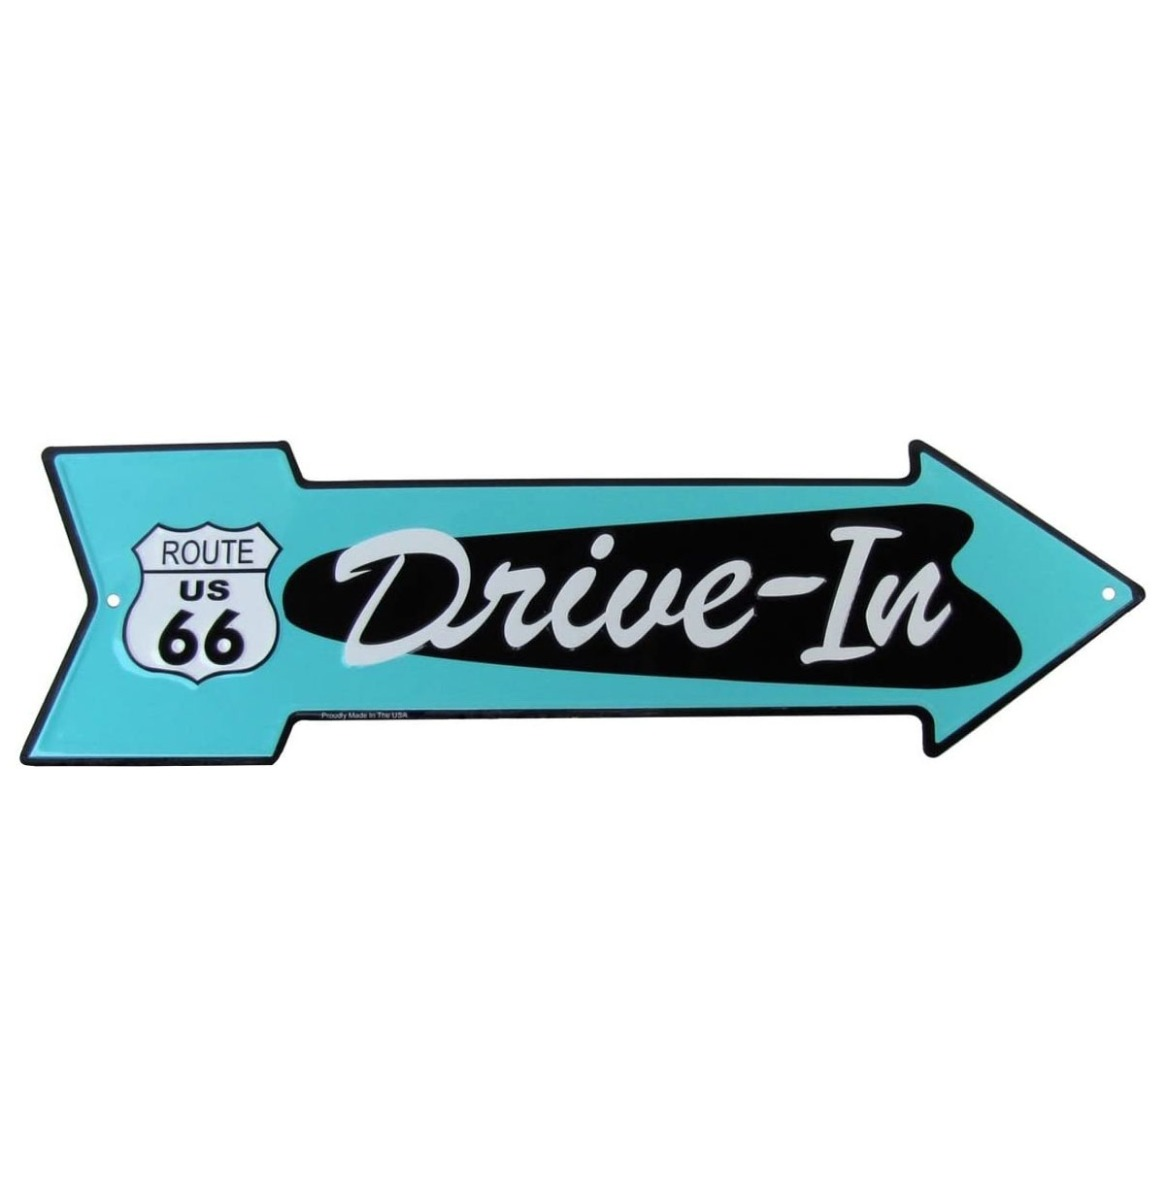 Drive-In Pijl Bord Turquoise - Route 66 50 x 14,5 cm